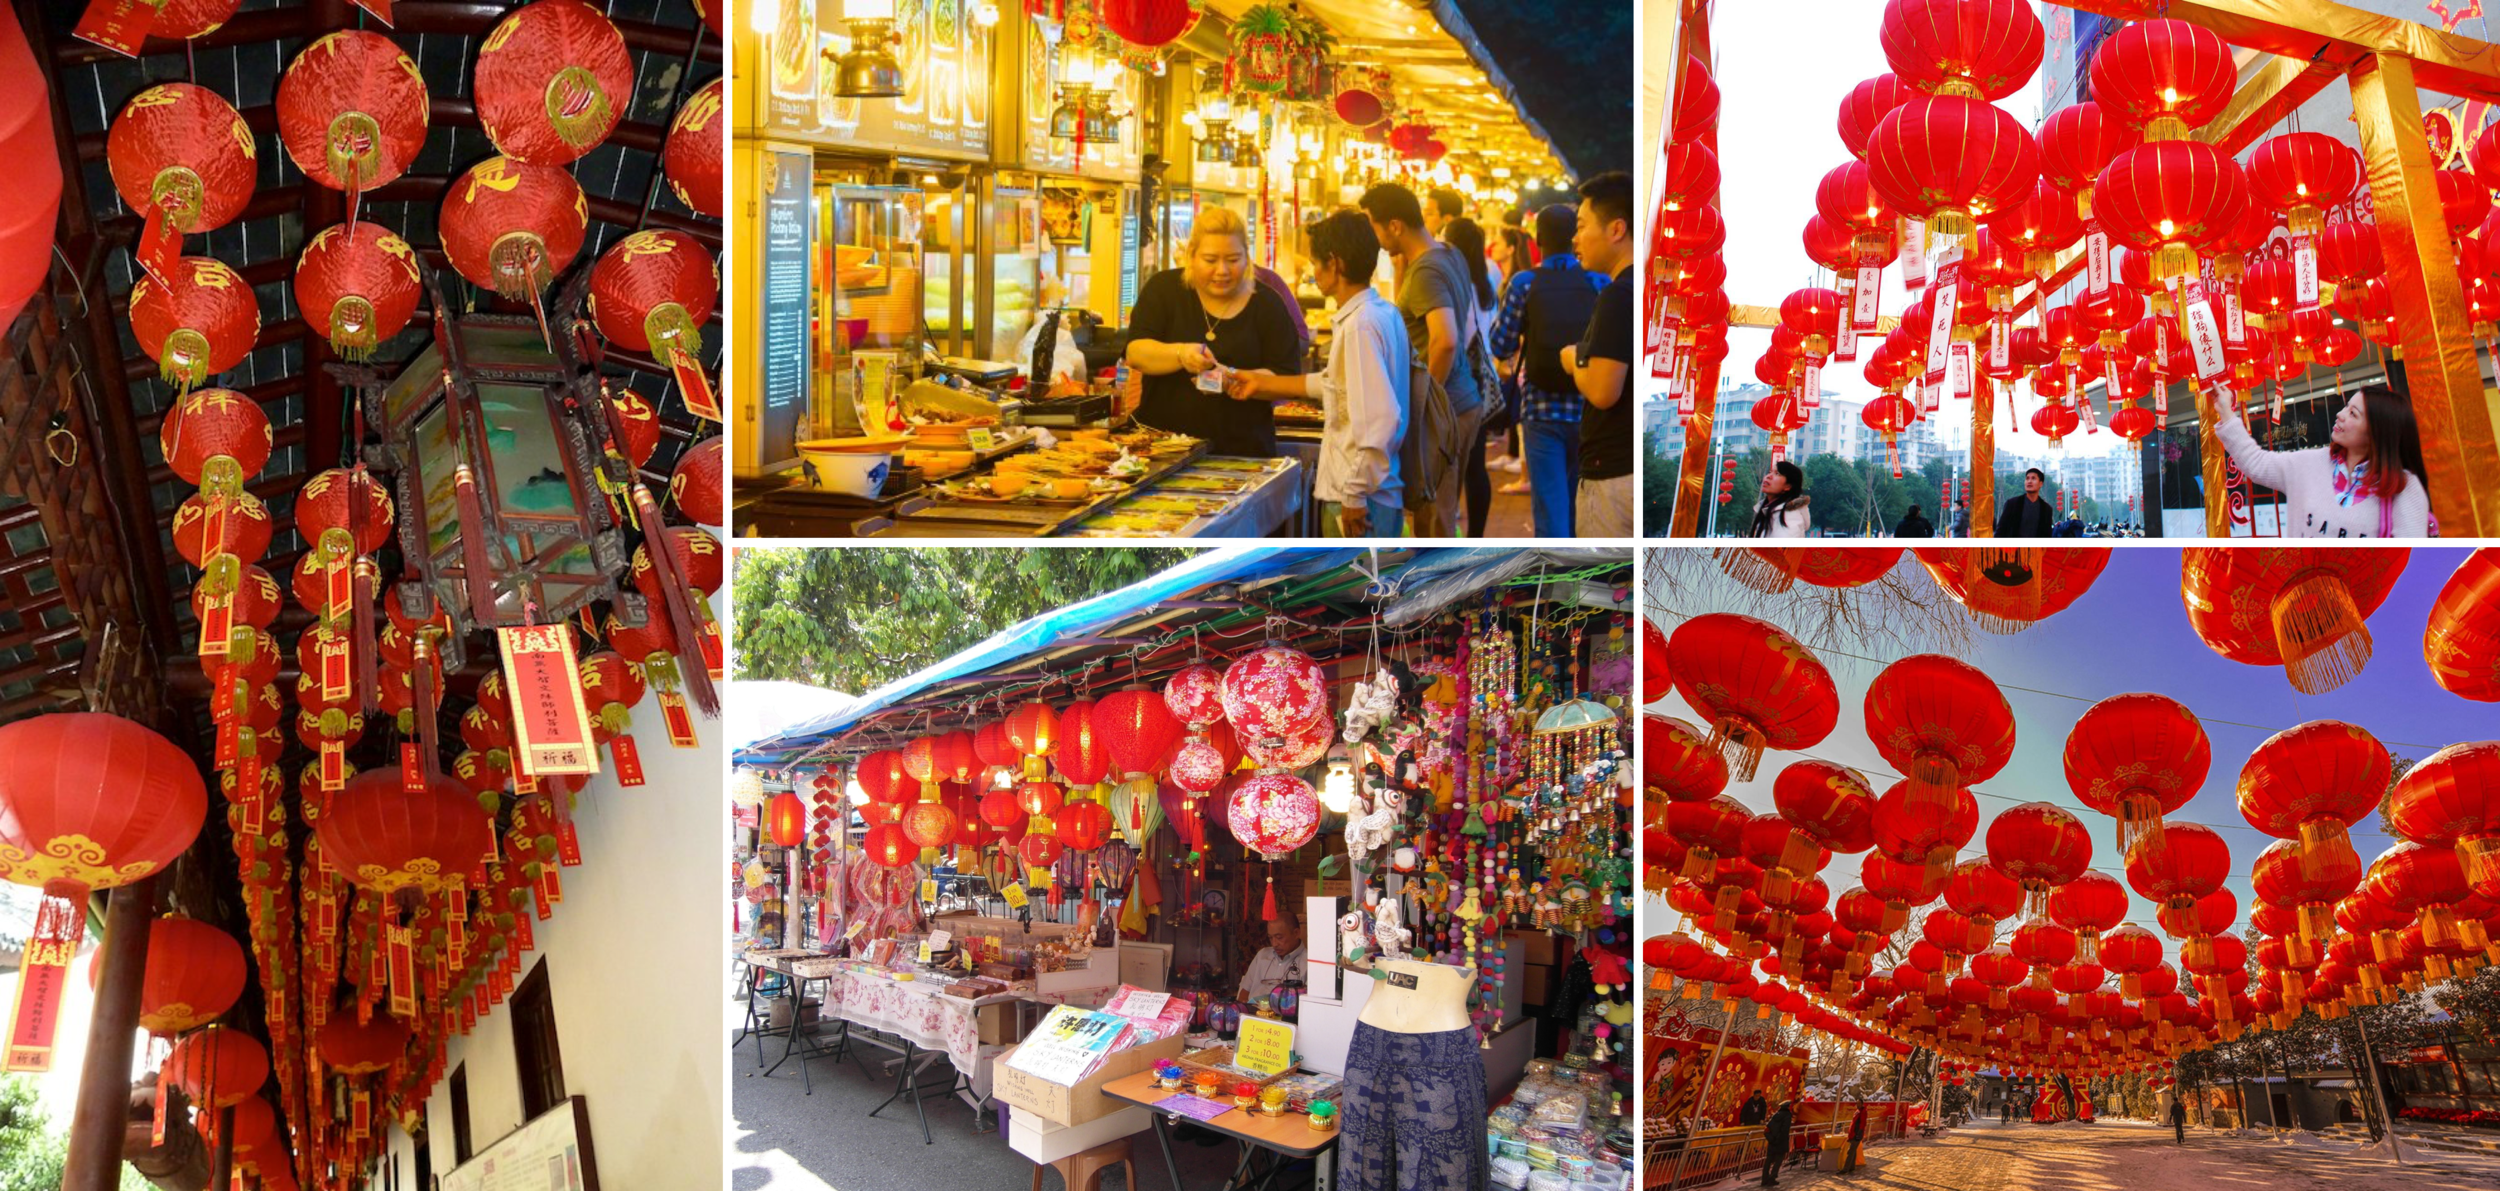 The reality of red Chinese lanterns